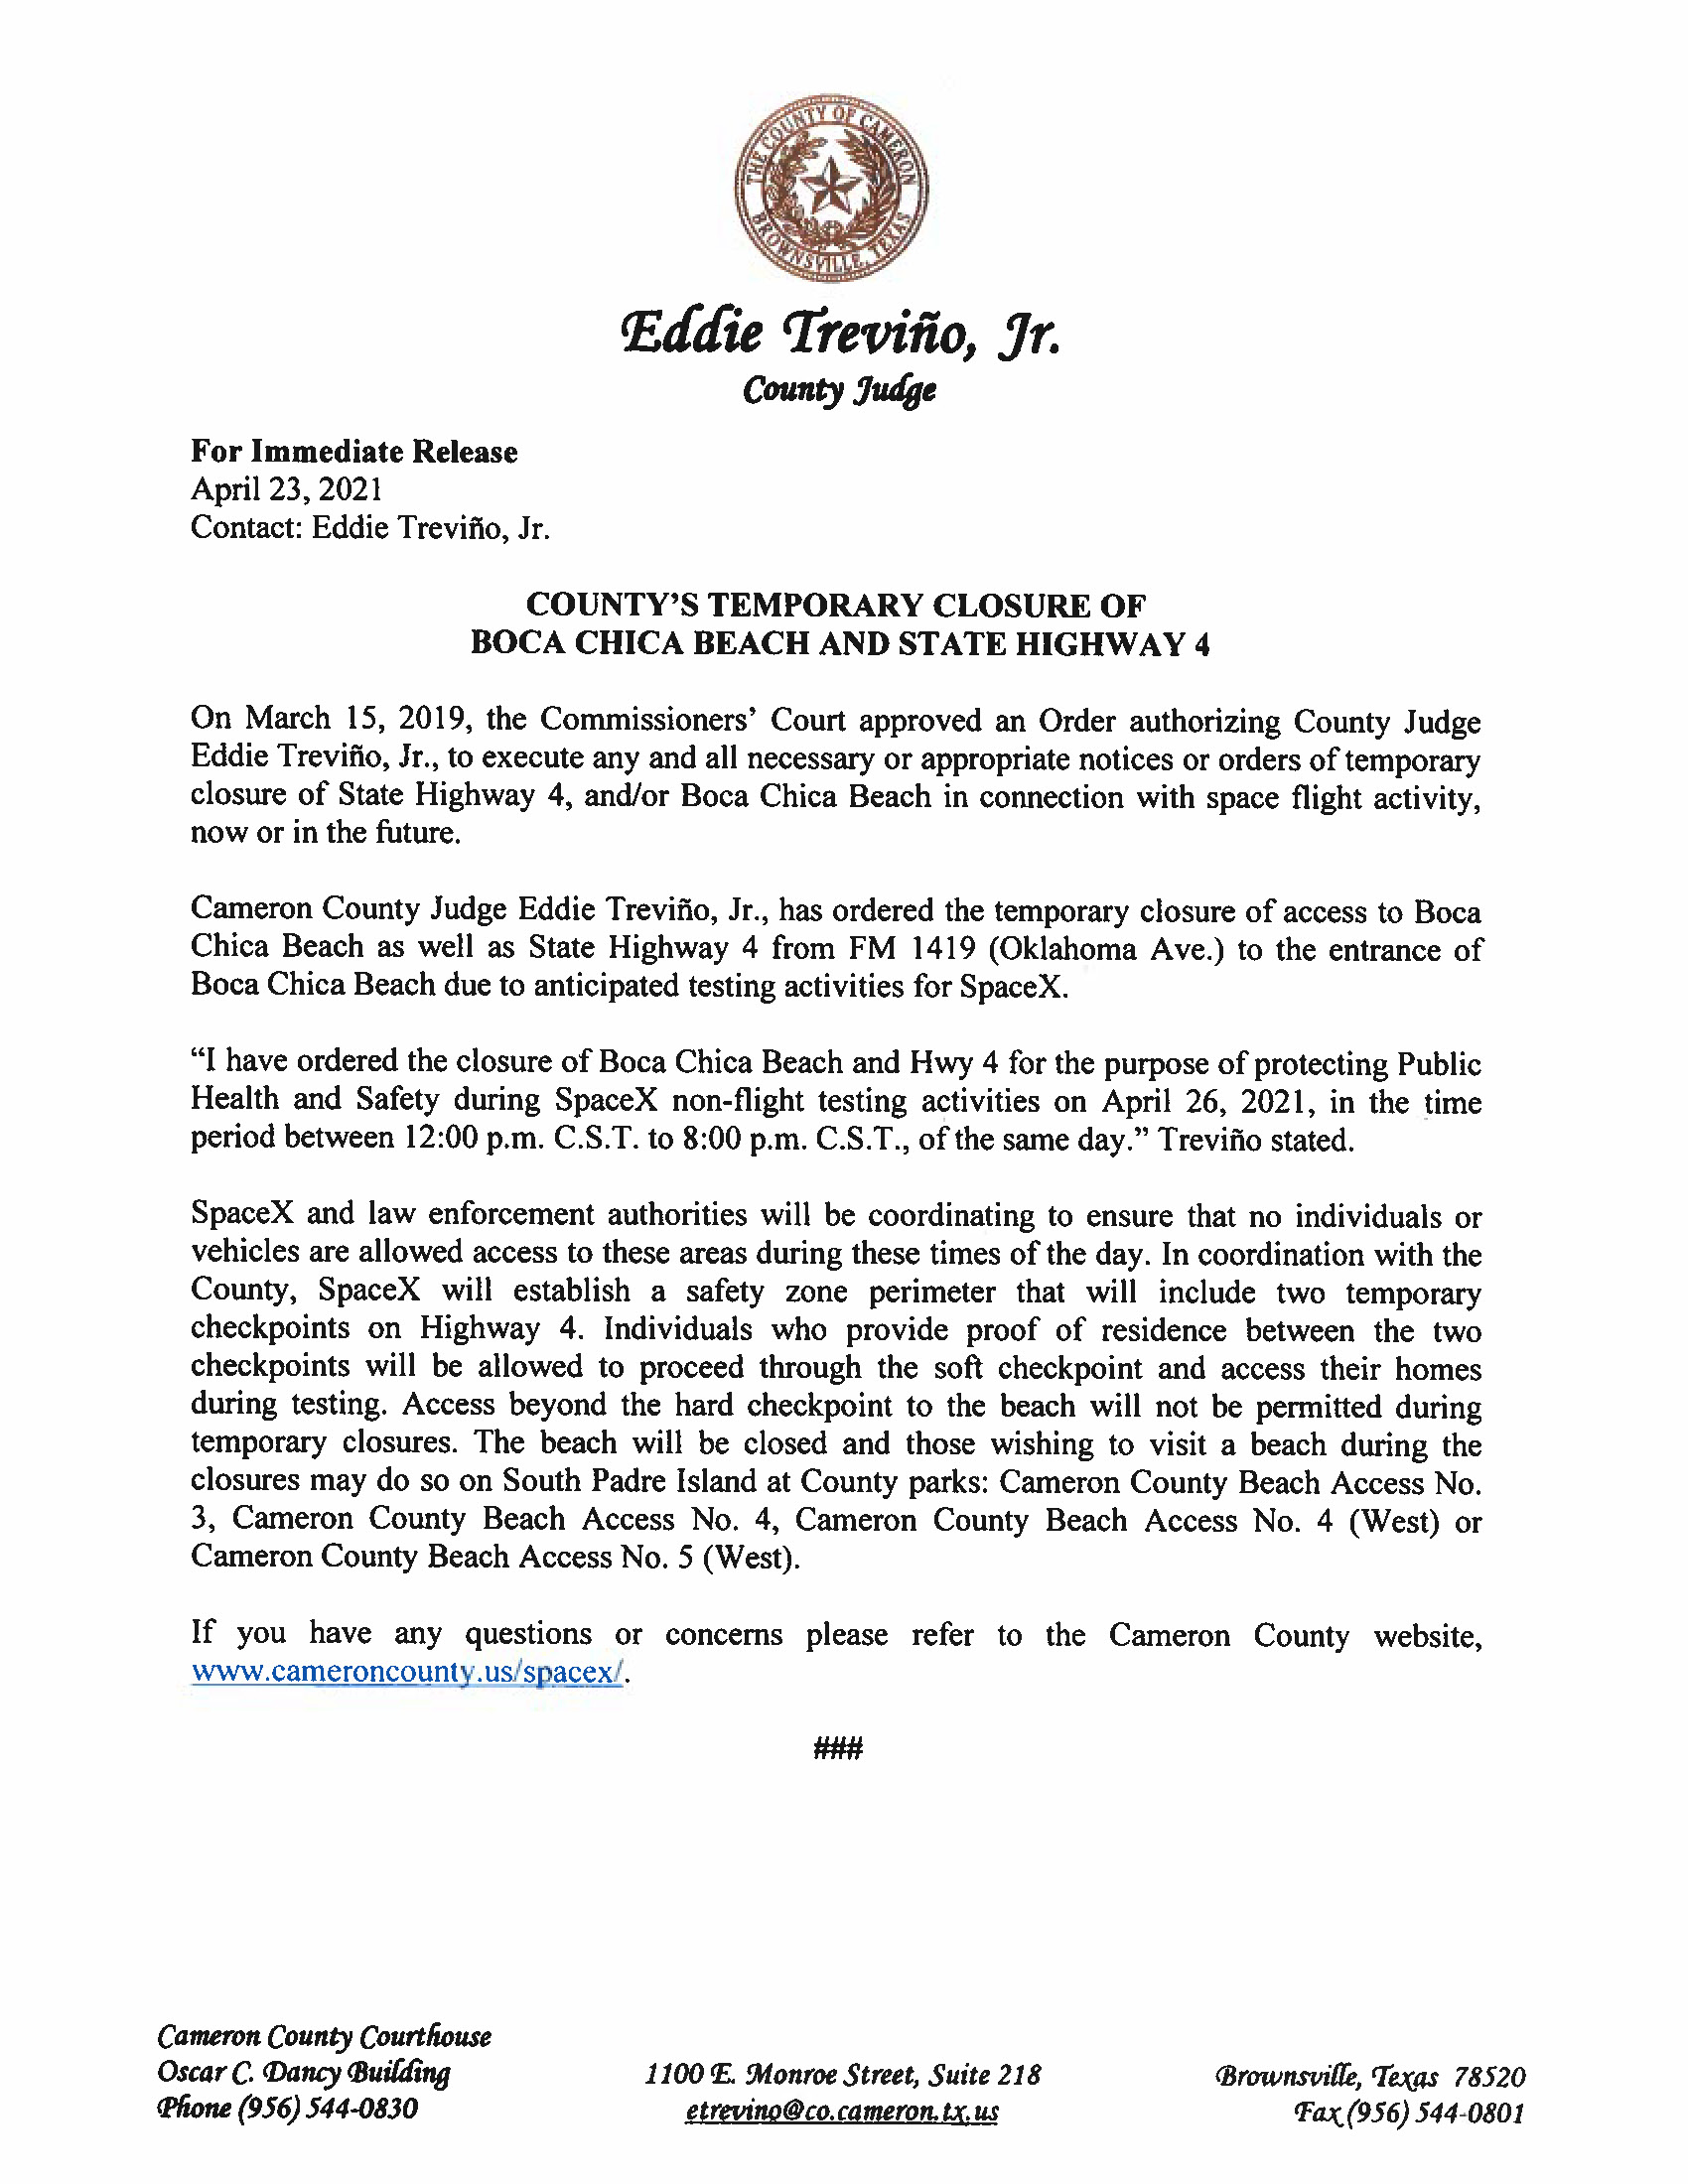 Press Release In English And Spanish.04.26.2021 Page 1